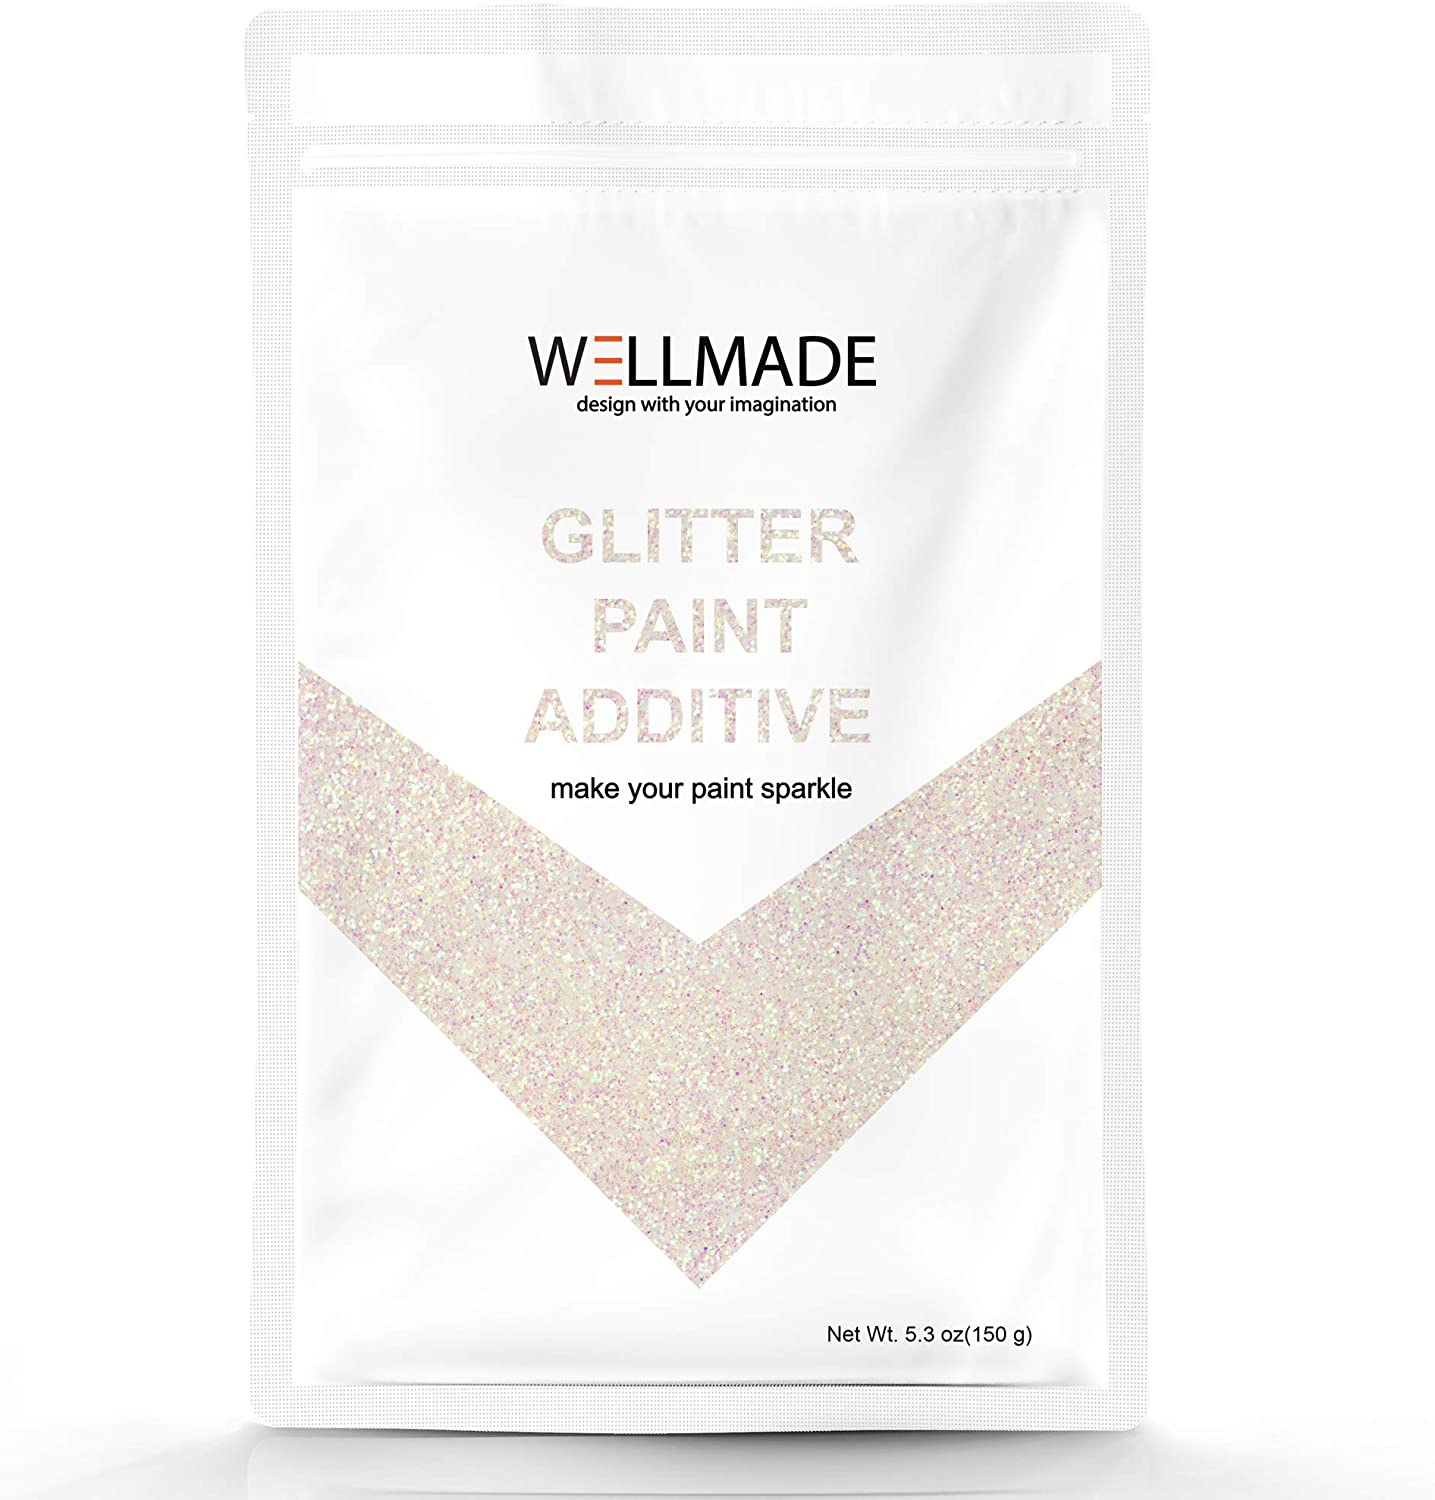 150g 5.3oz Wellmade Glitter Paint Special Max 62% OFF sale item Paint-Interi Wall for Additive